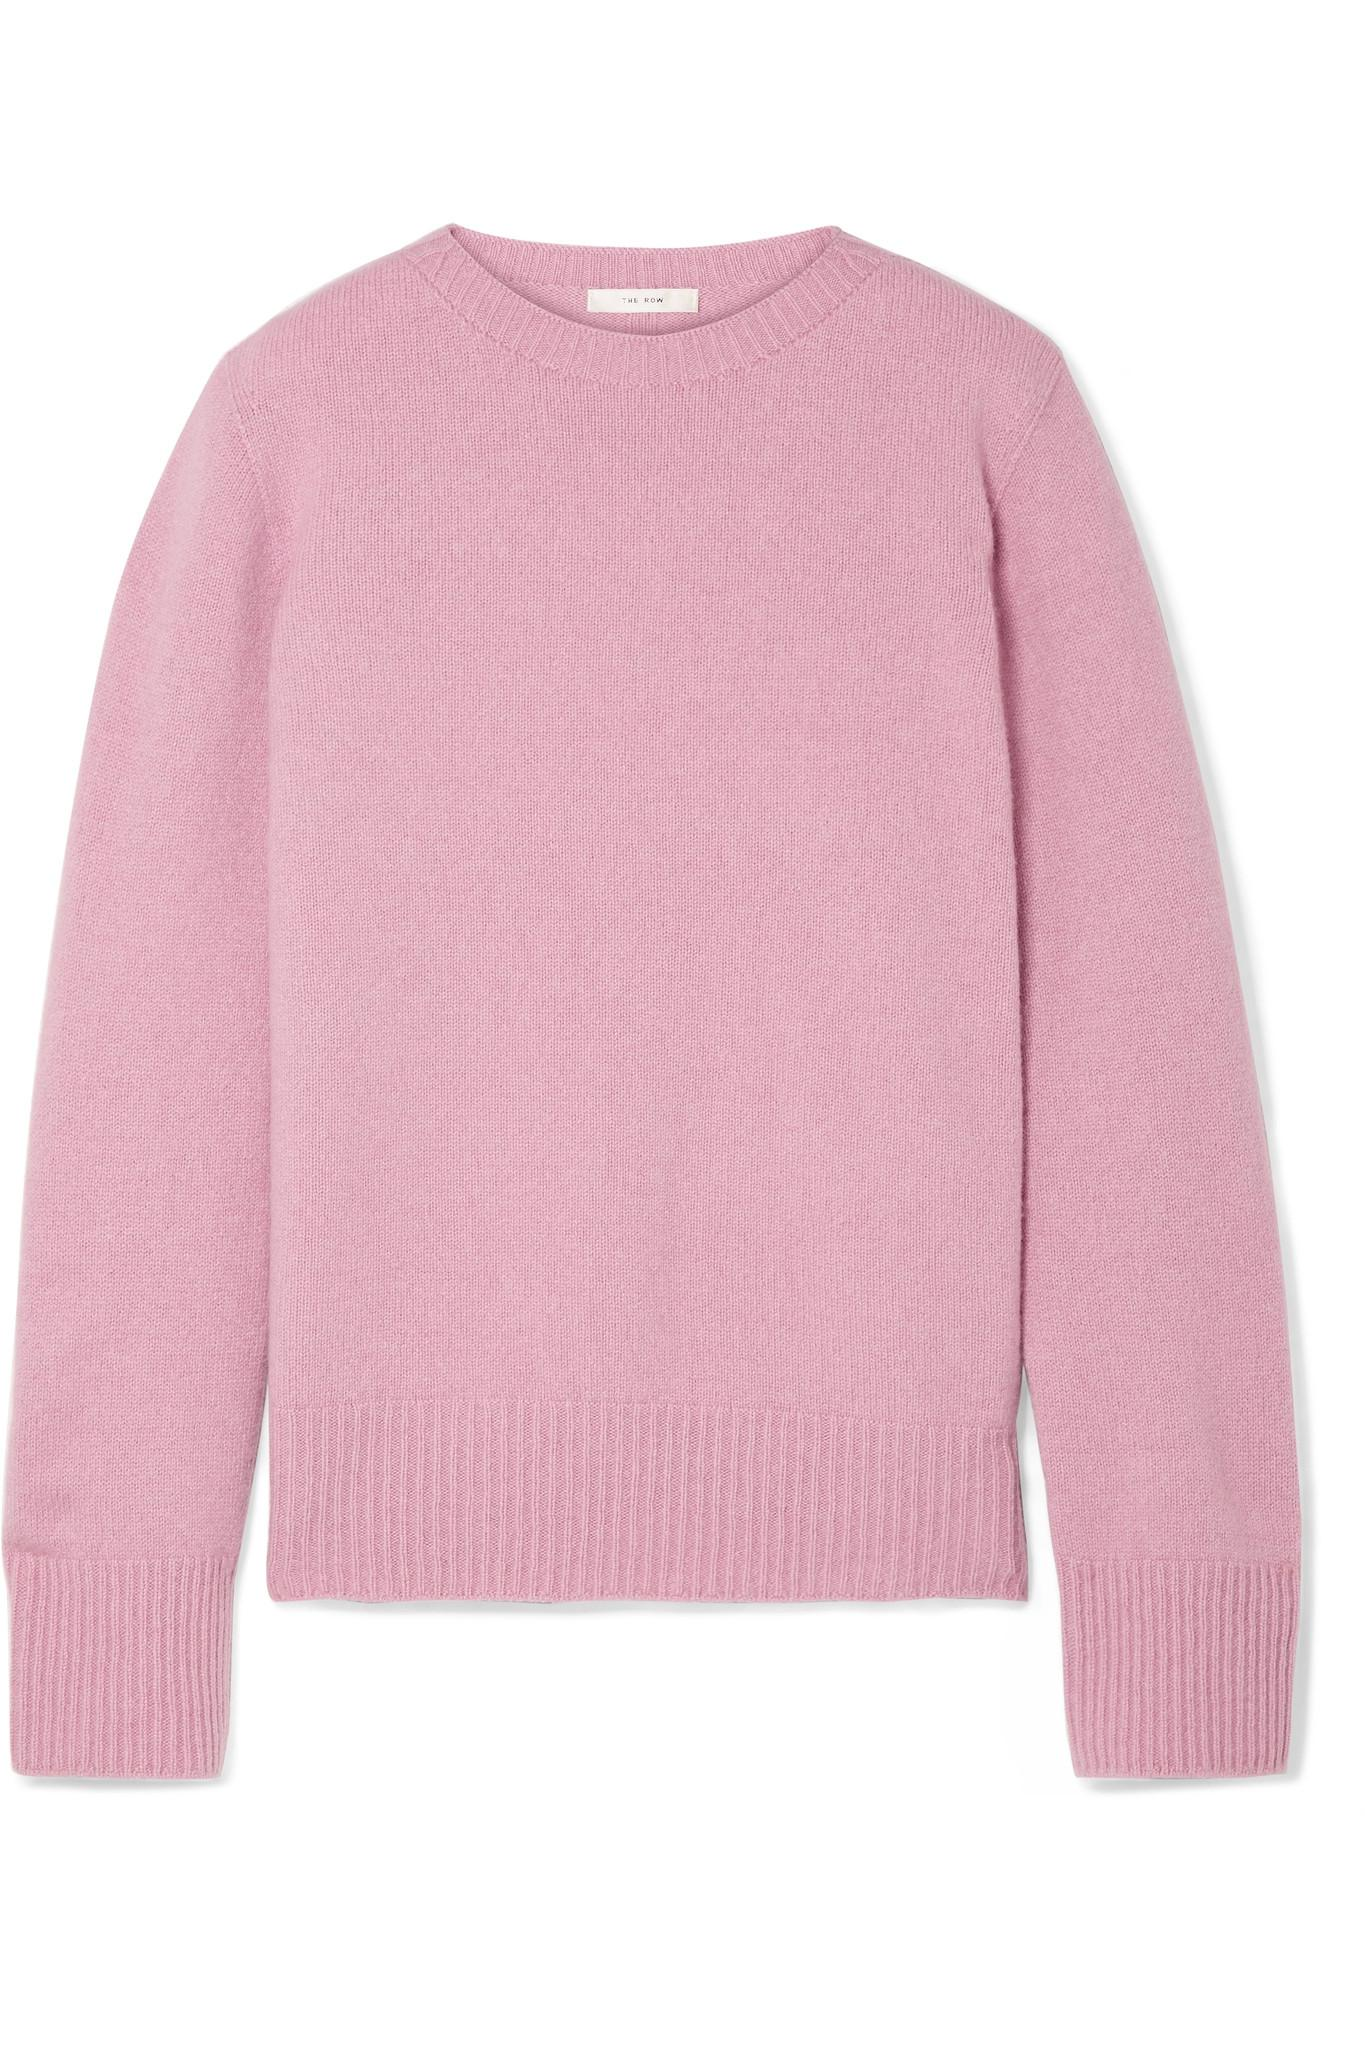 7df7076d69 The Row Sibel Oversized Wool And Cashmere-blend Sweater in Pink - Lyst